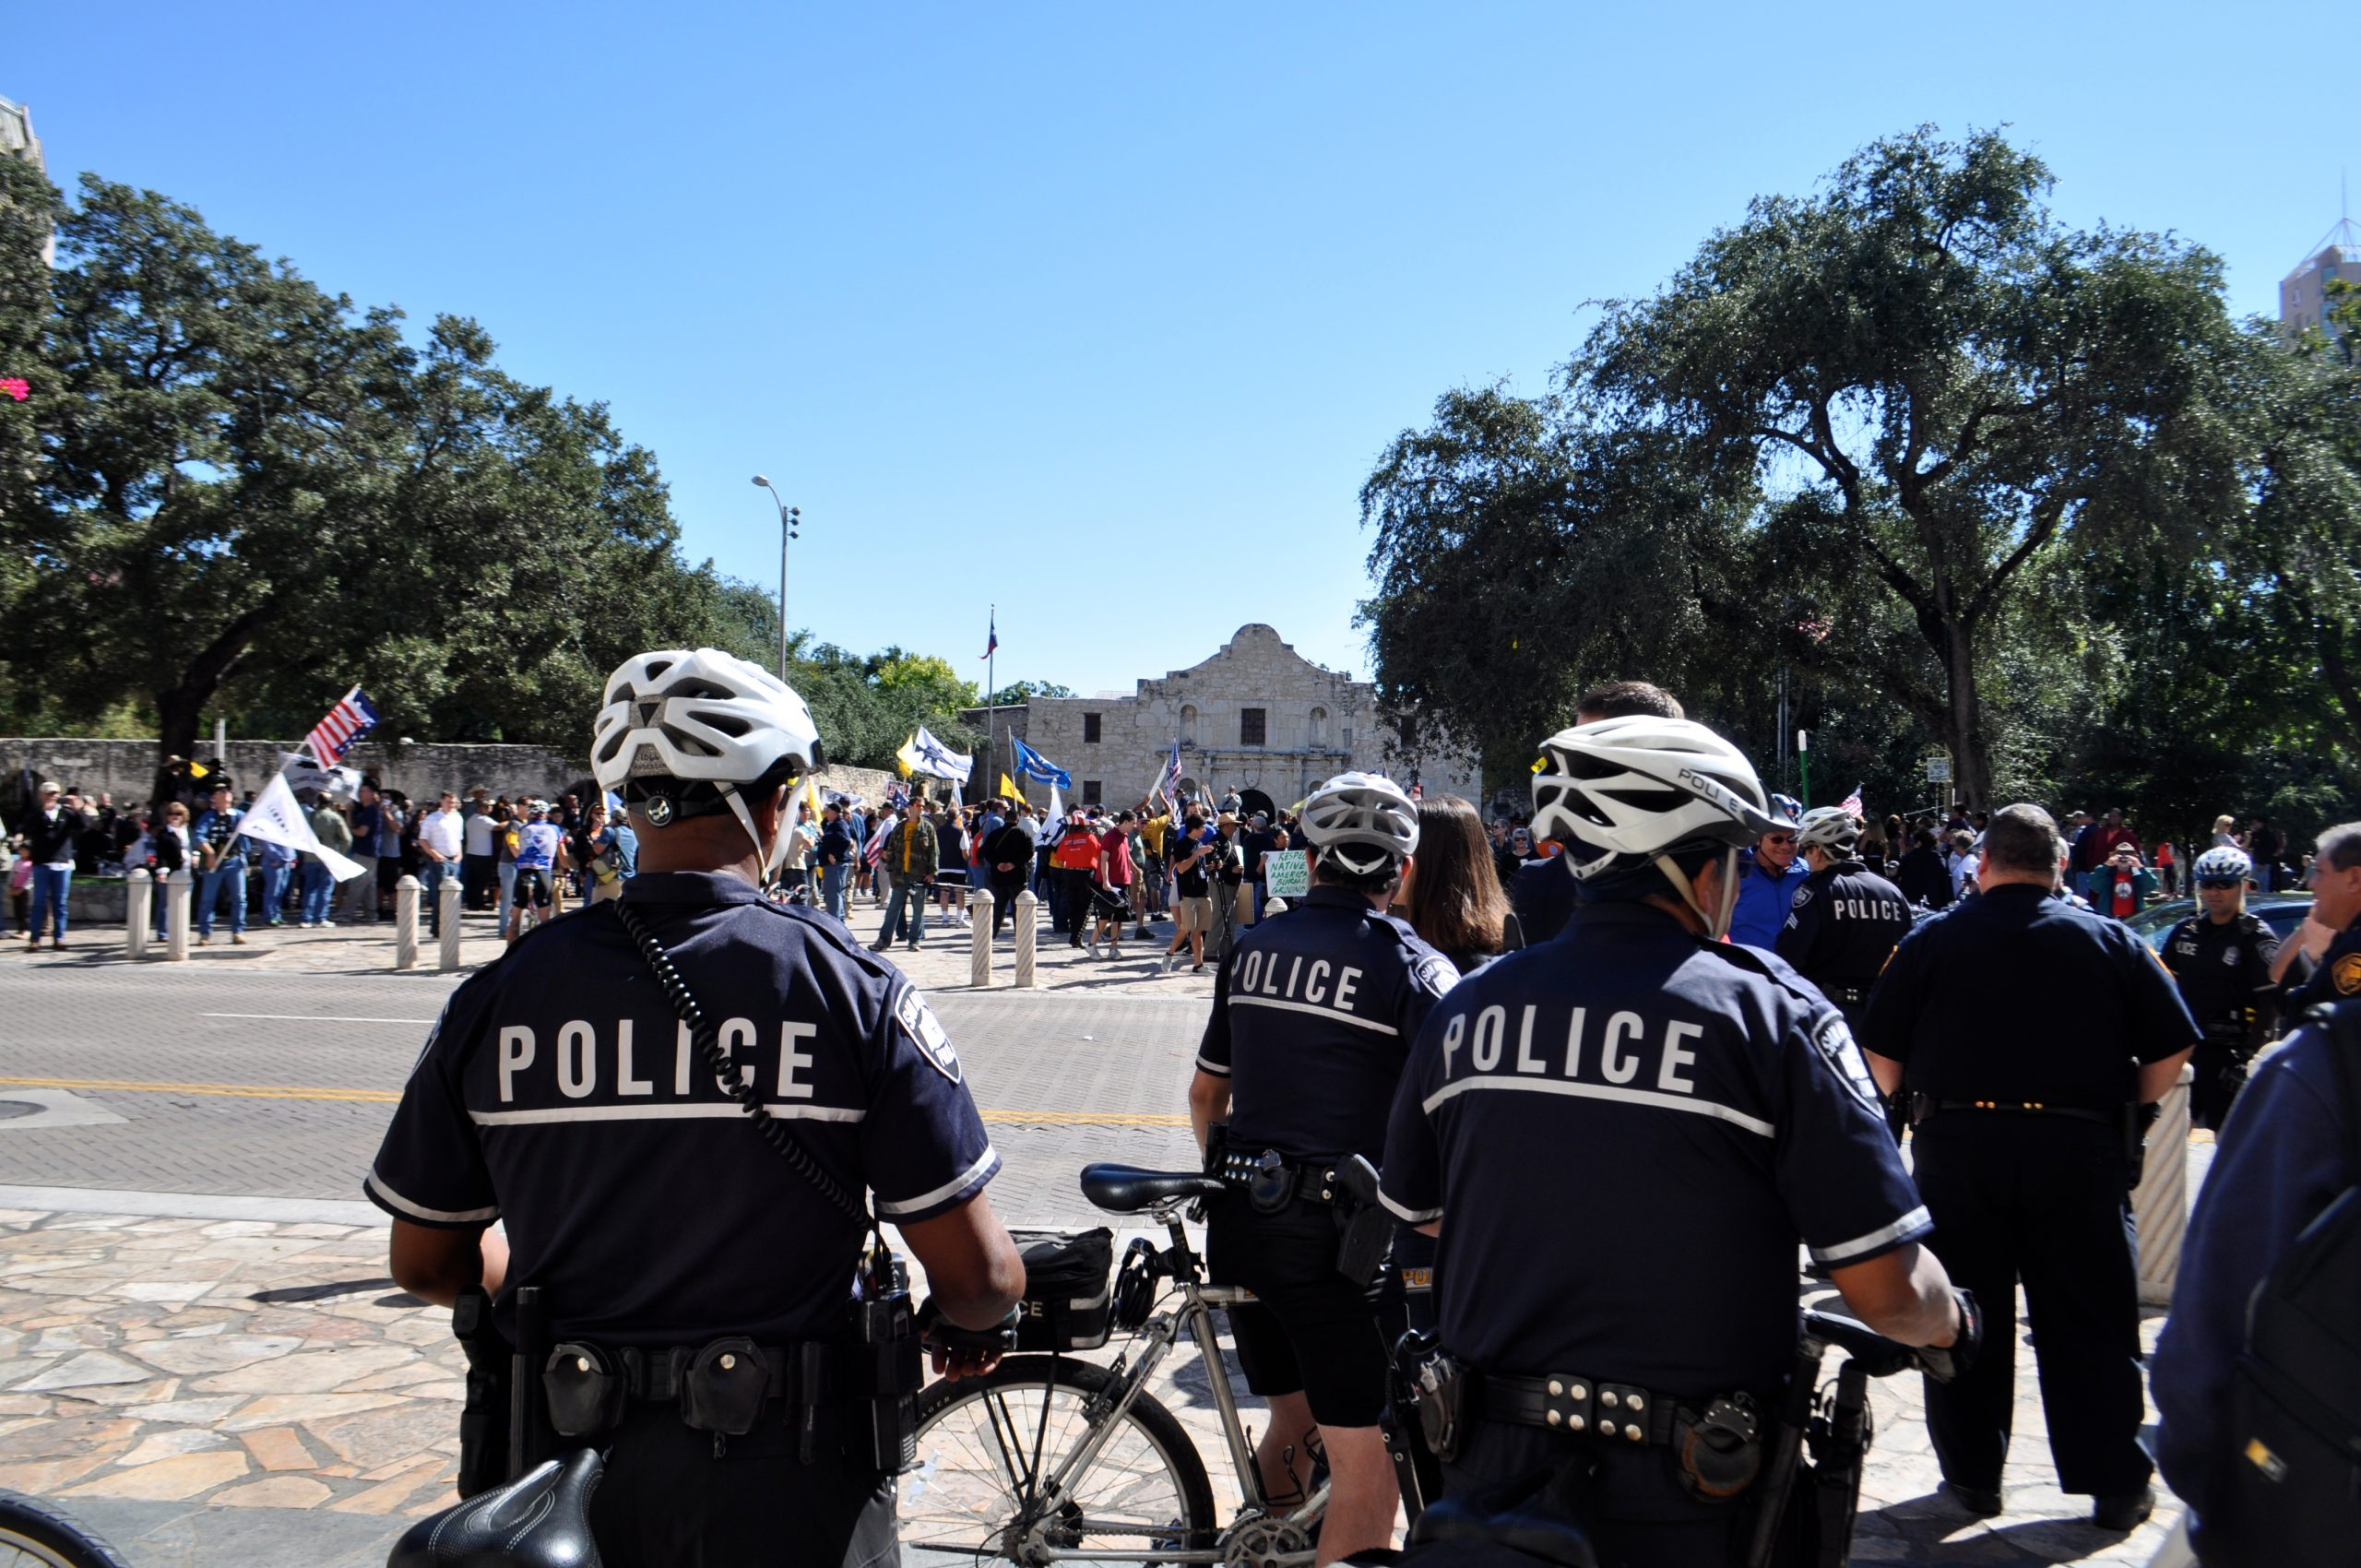 Police officers stand watch over the anti-gun law rally at Alamo Plaza. Photo by Iris Dimmick.